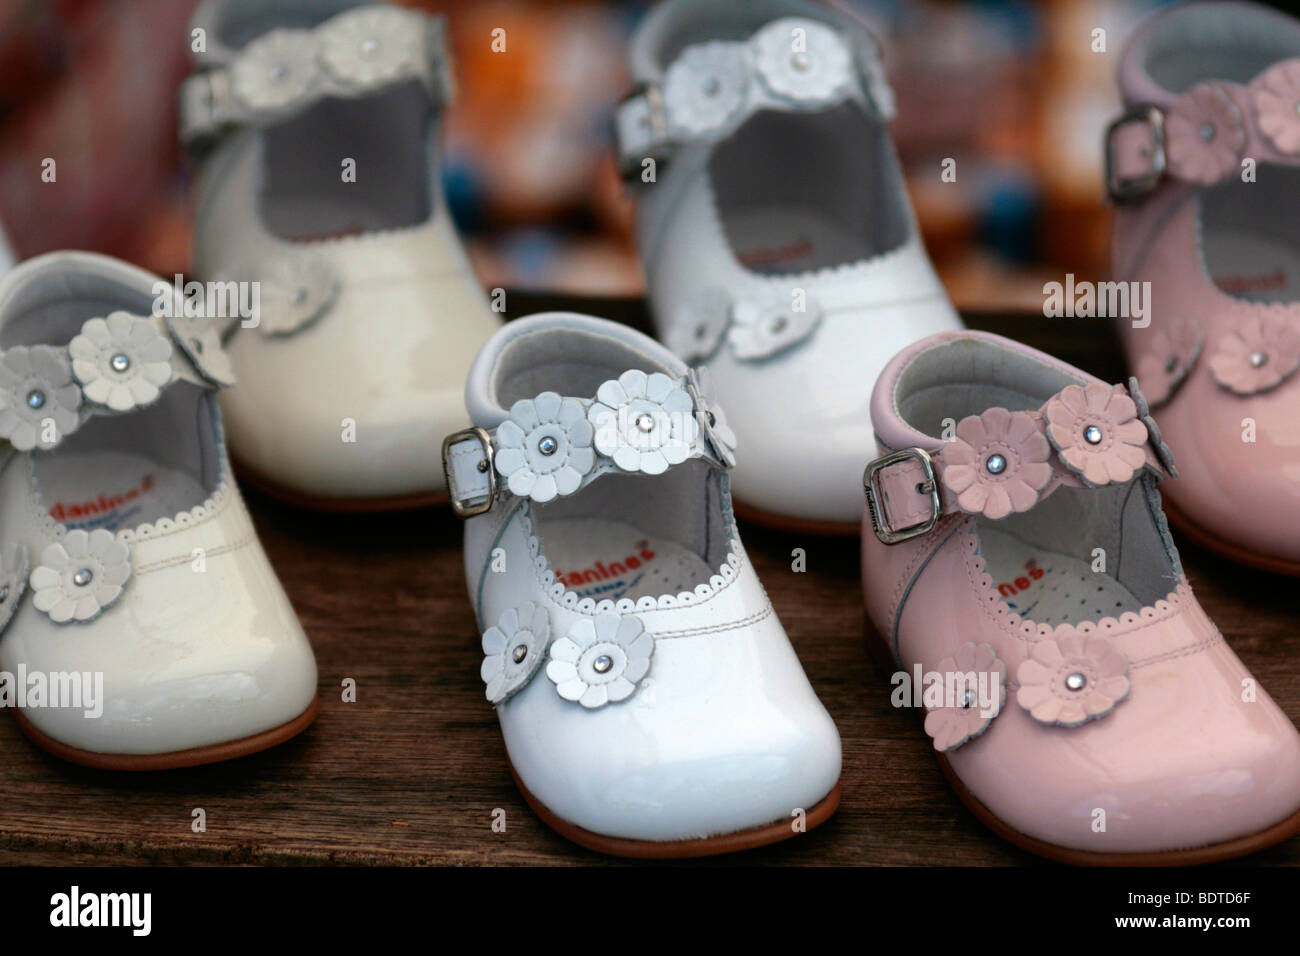 Children's shoes on display at a market - Stock Image